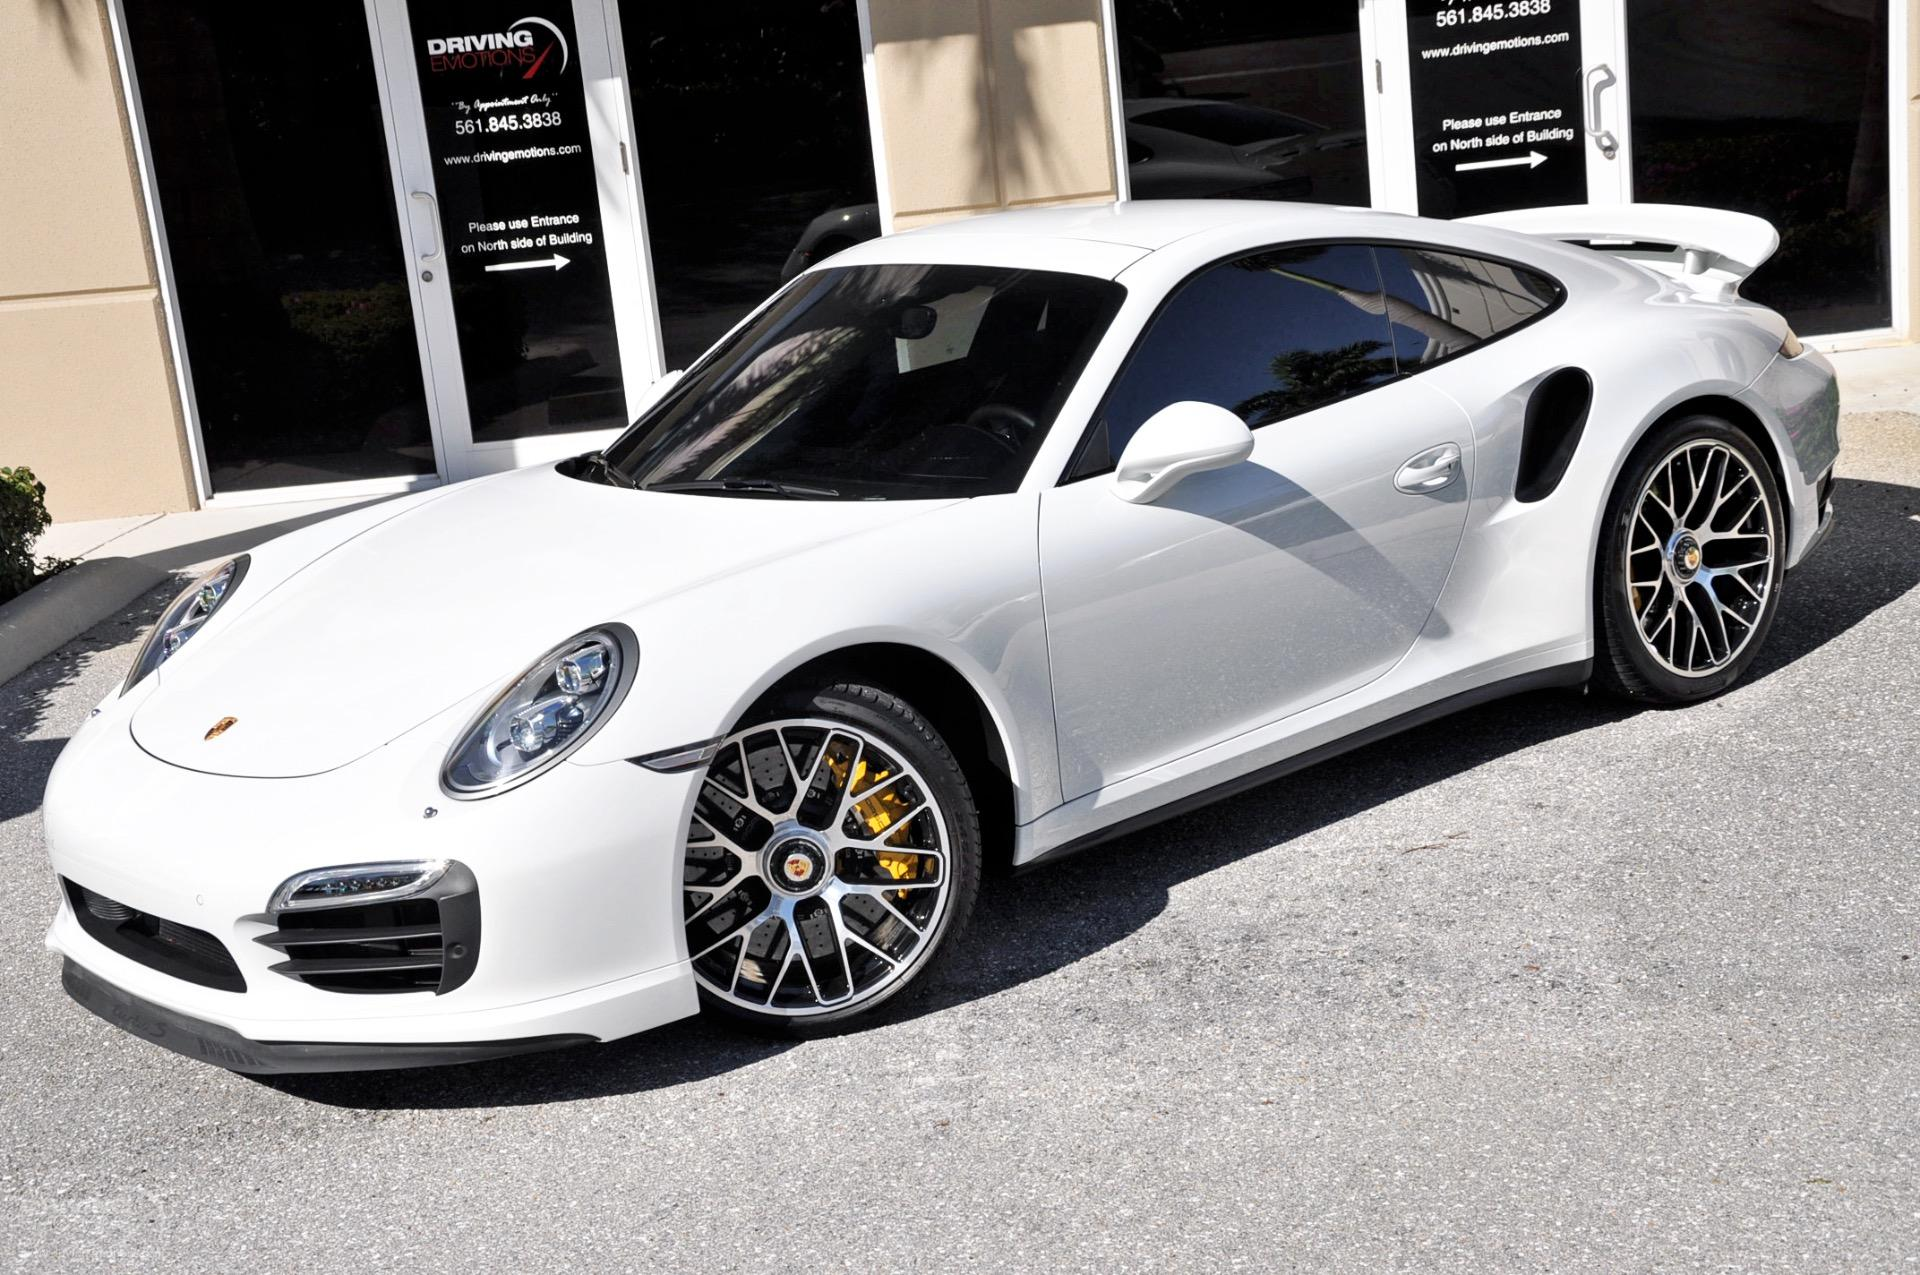 Used 2015 Porsche 911 Turbo S Turbo S | Lake Park, FL